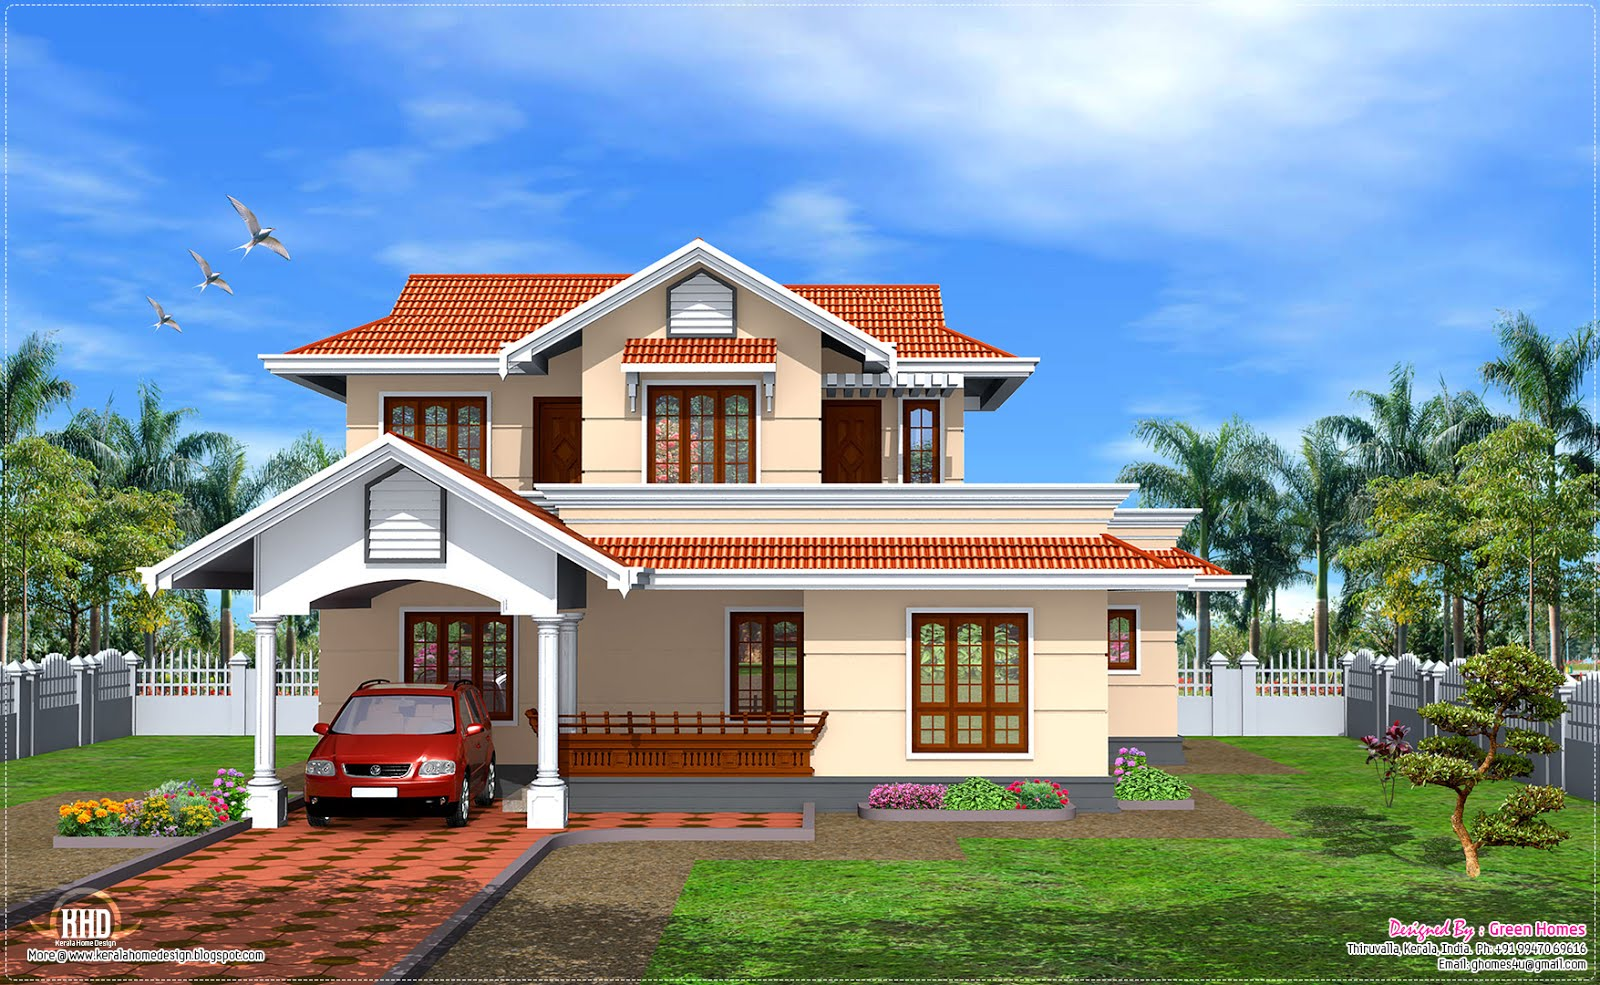 Kerala model 1900 home design kerala home design for House model design photos